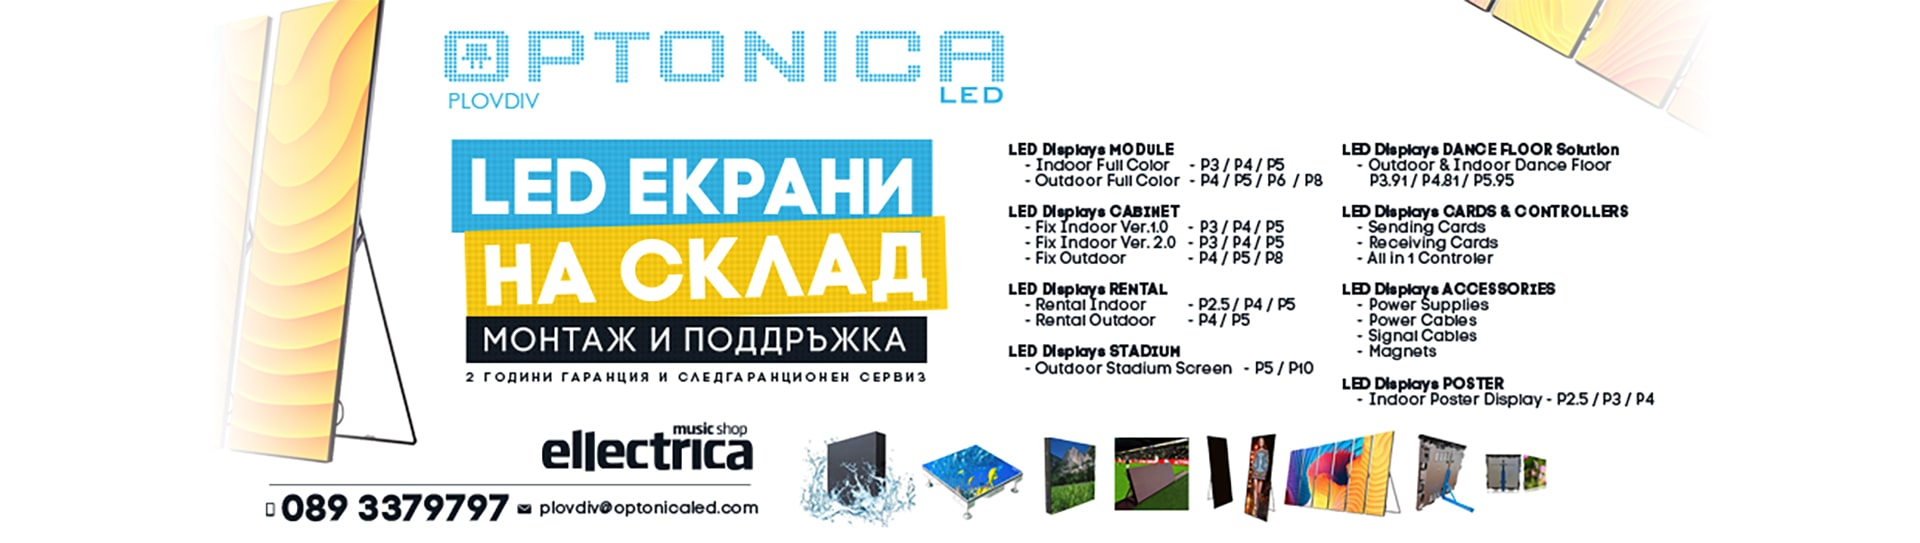 led-displays